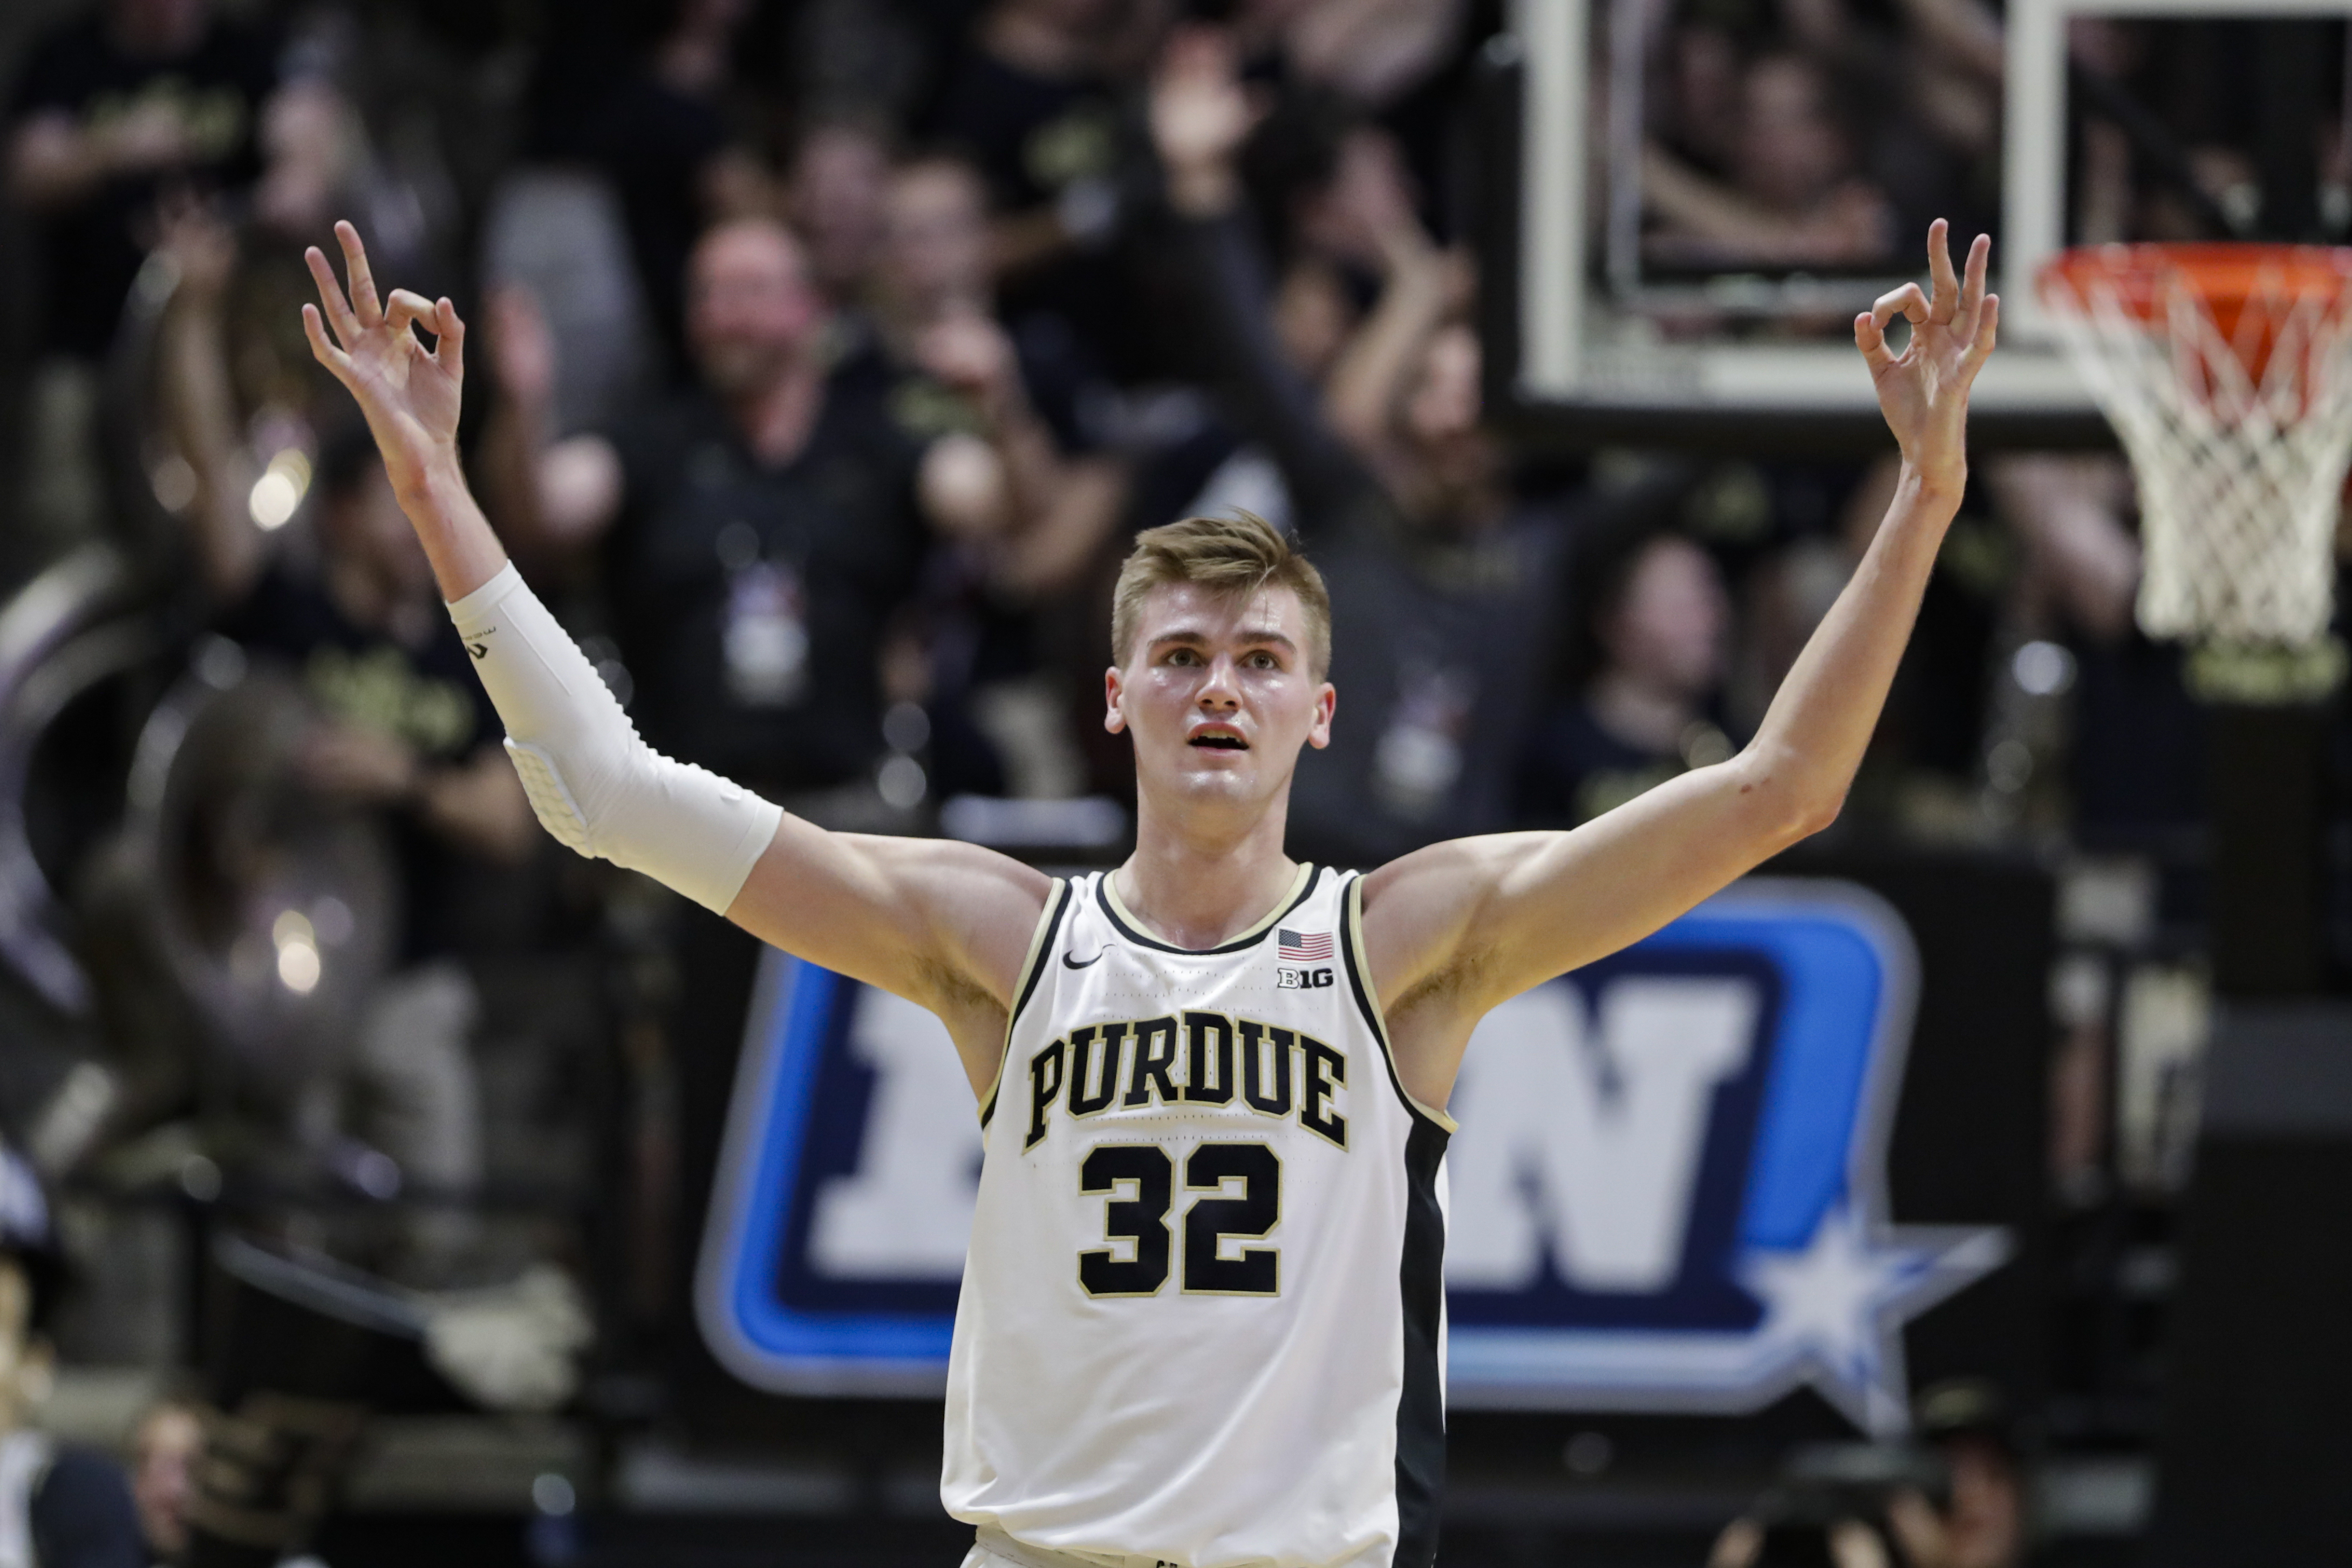 Purdue routs No. 17 Iowa 104-68 in offensive outburst